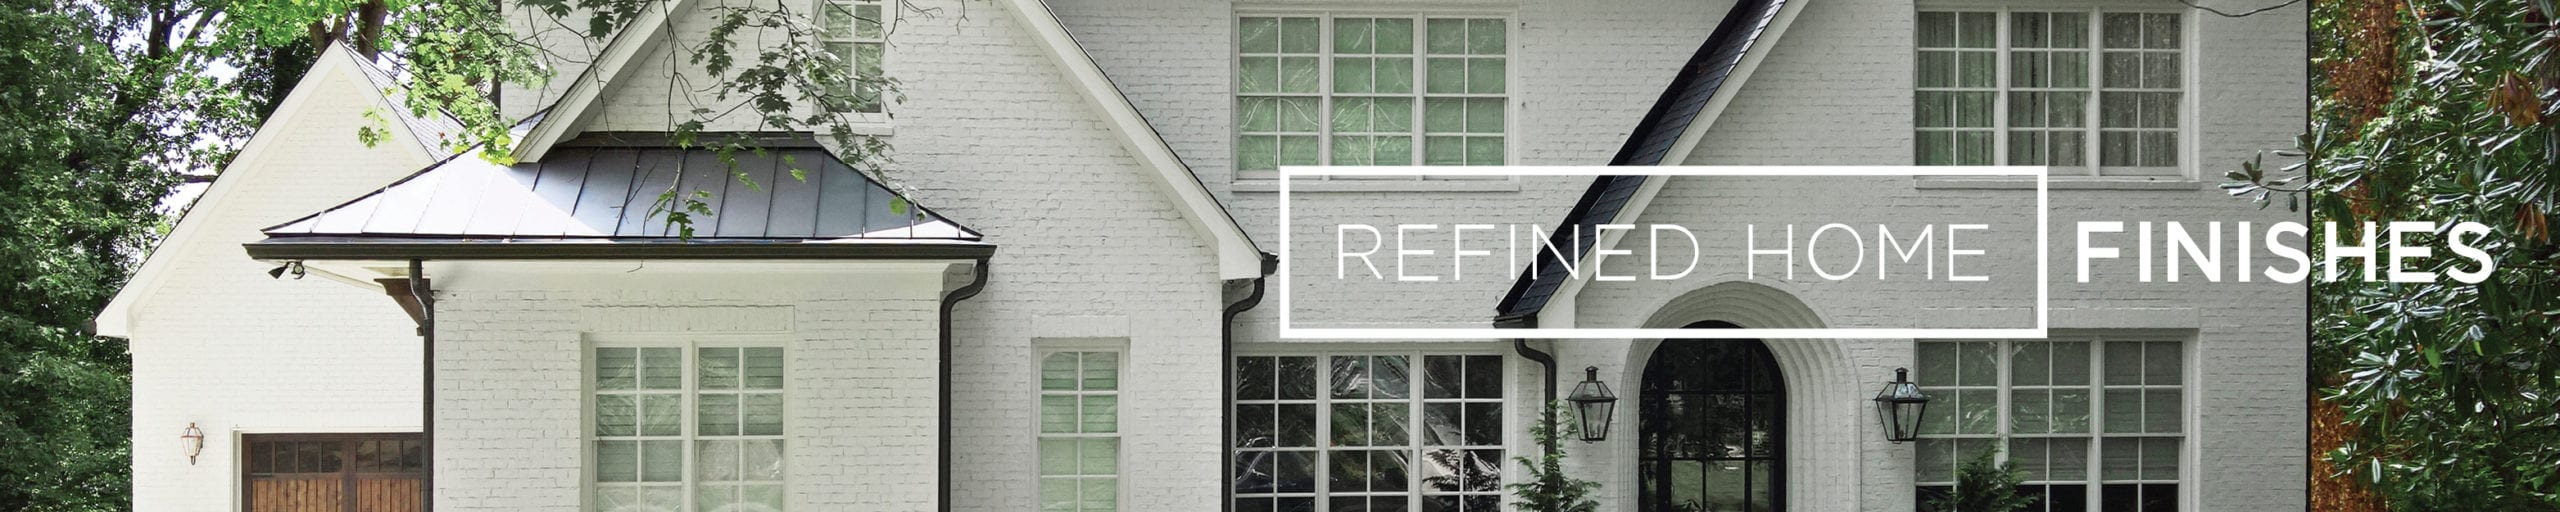 Refined Home Finishes Ad